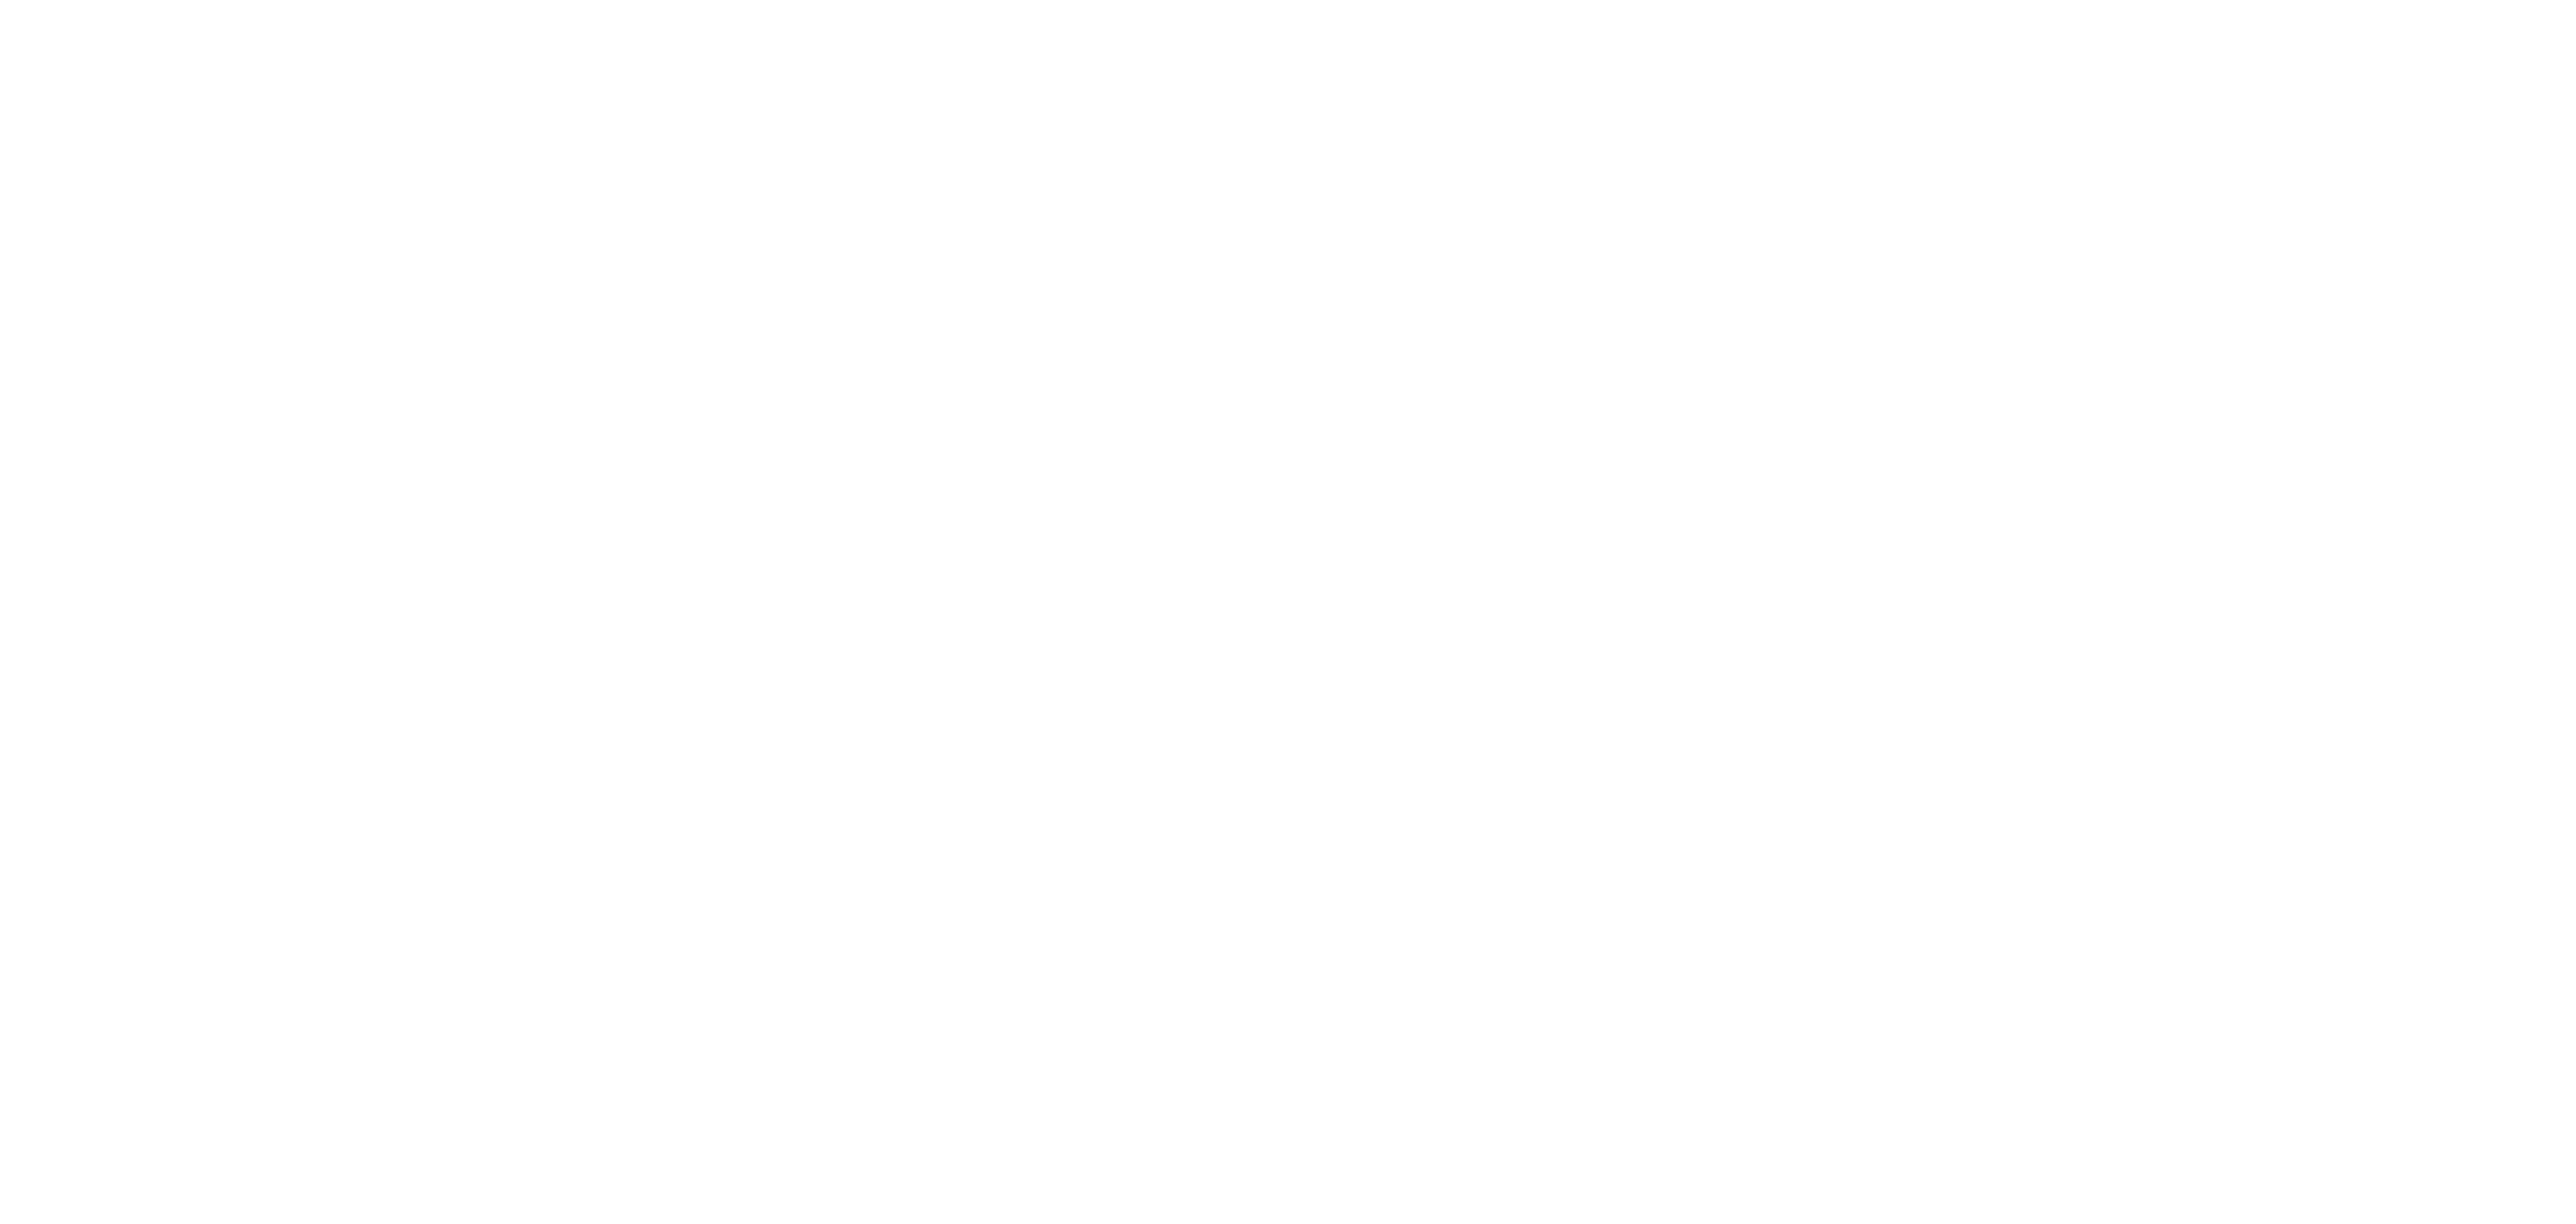 For Music Makers and Creative Thinkers